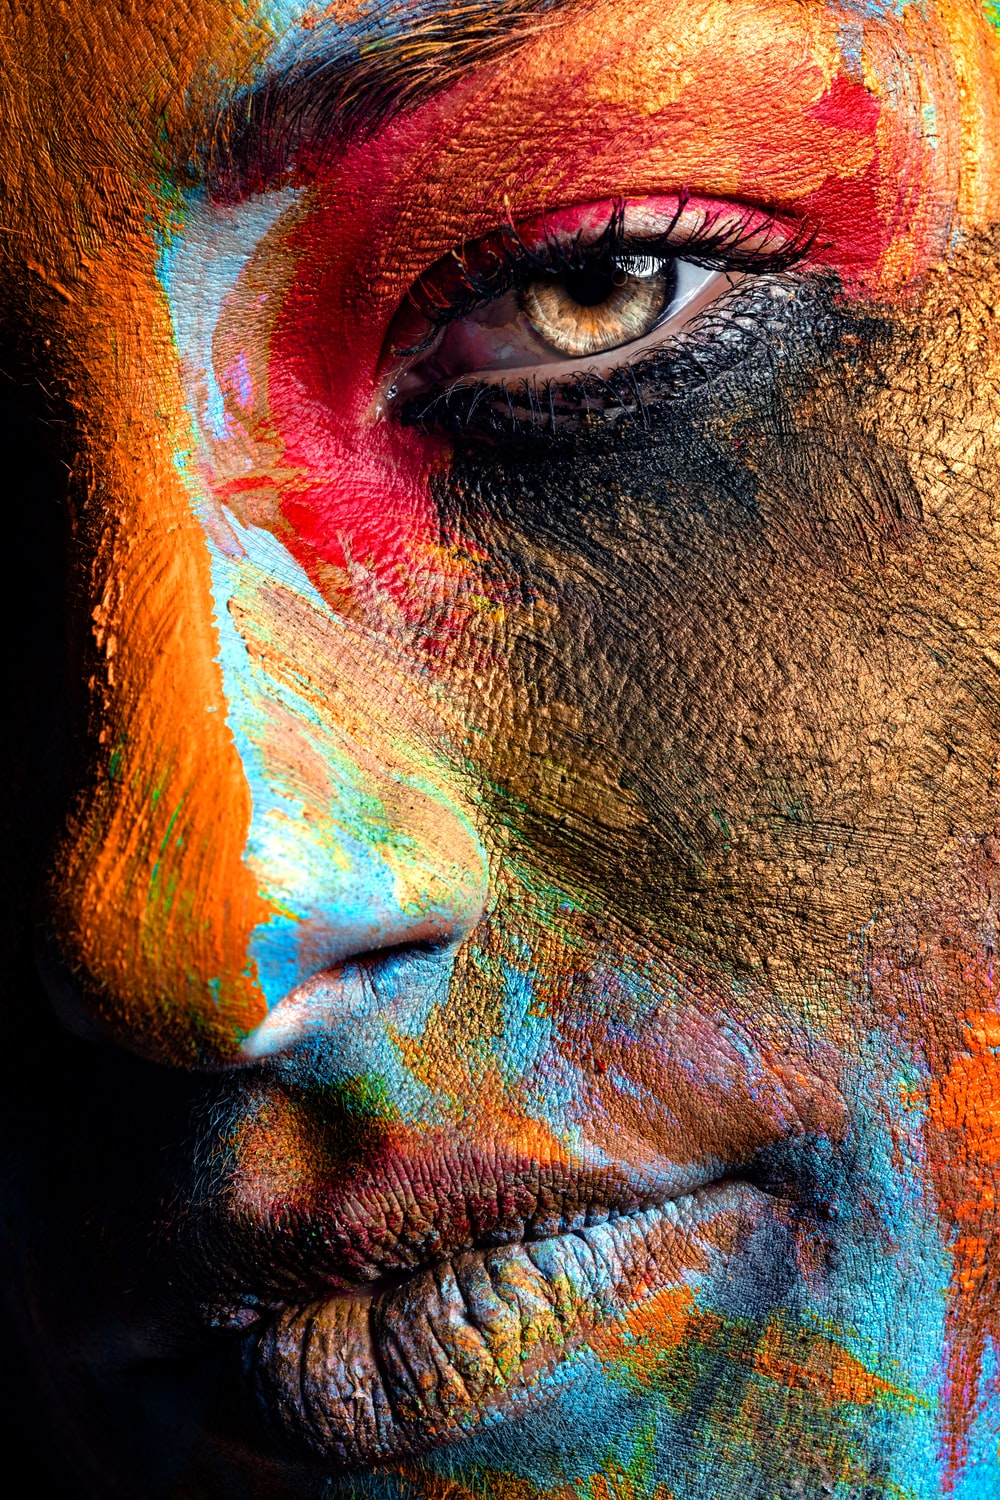 person face covered with paint